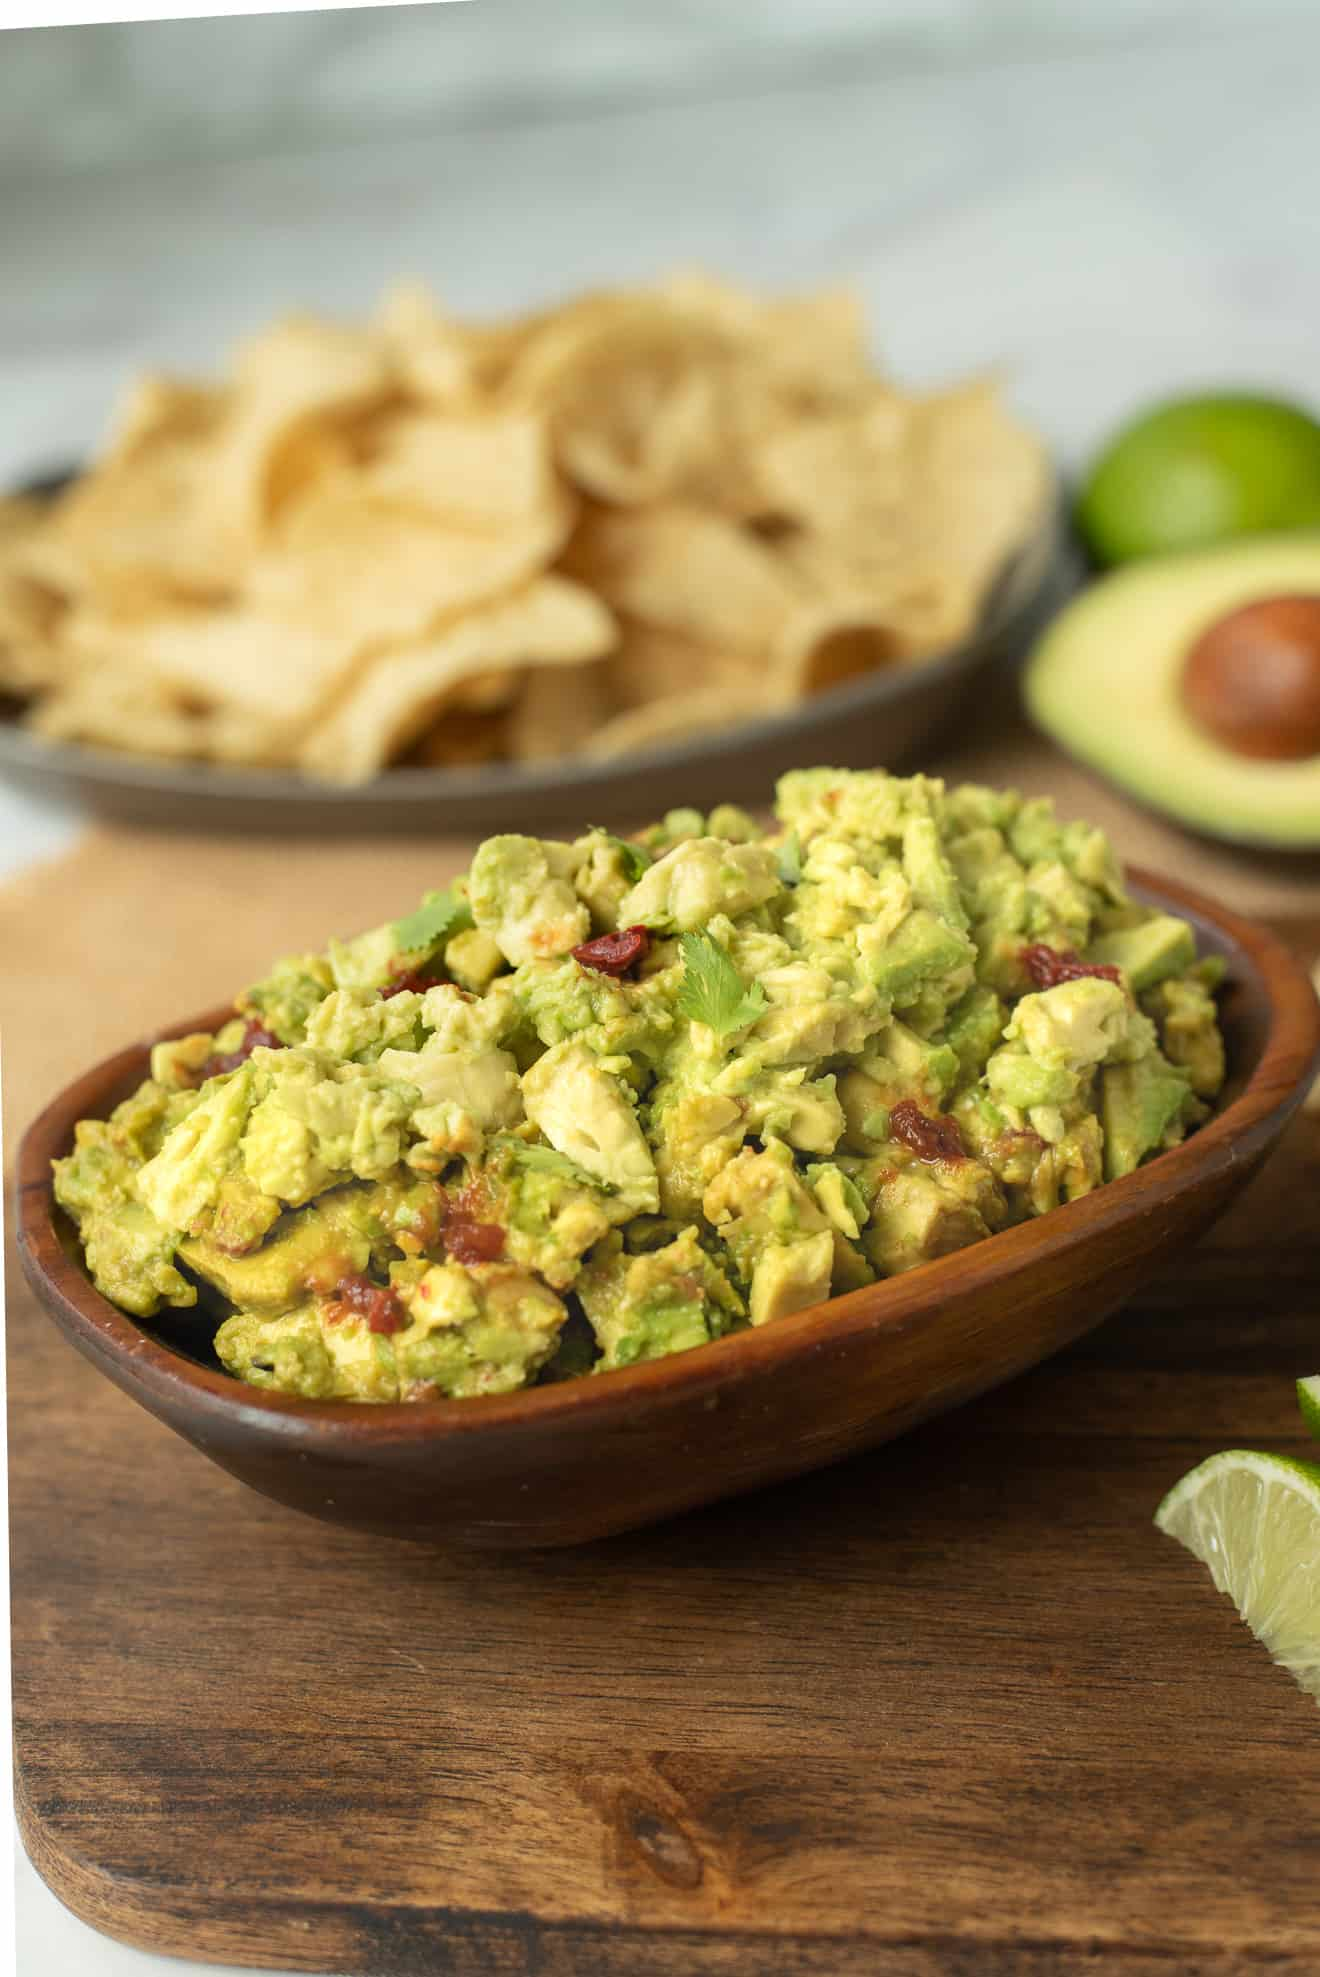 Chunky, spicy guacamole in an oval bowl with tortilla chips